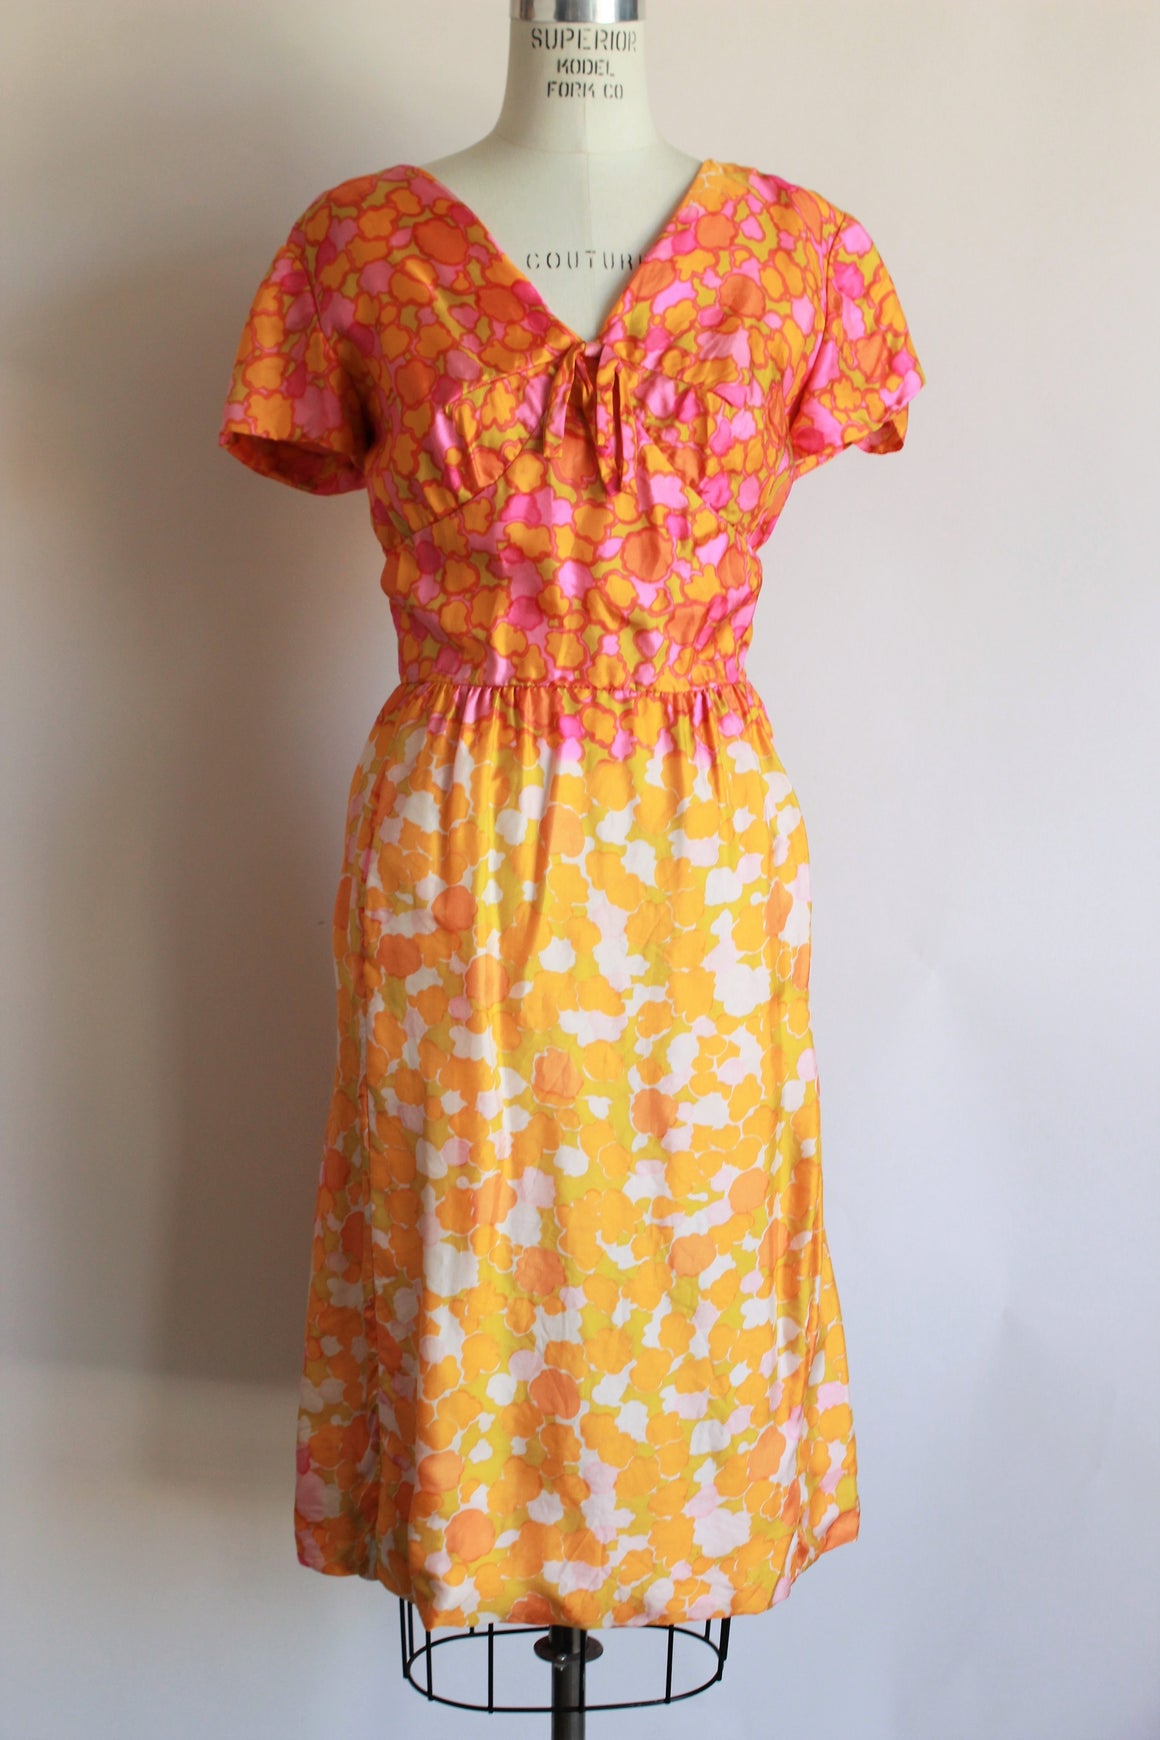 Vintage 1960s Silk Dress in Pink and Orange With a Bow